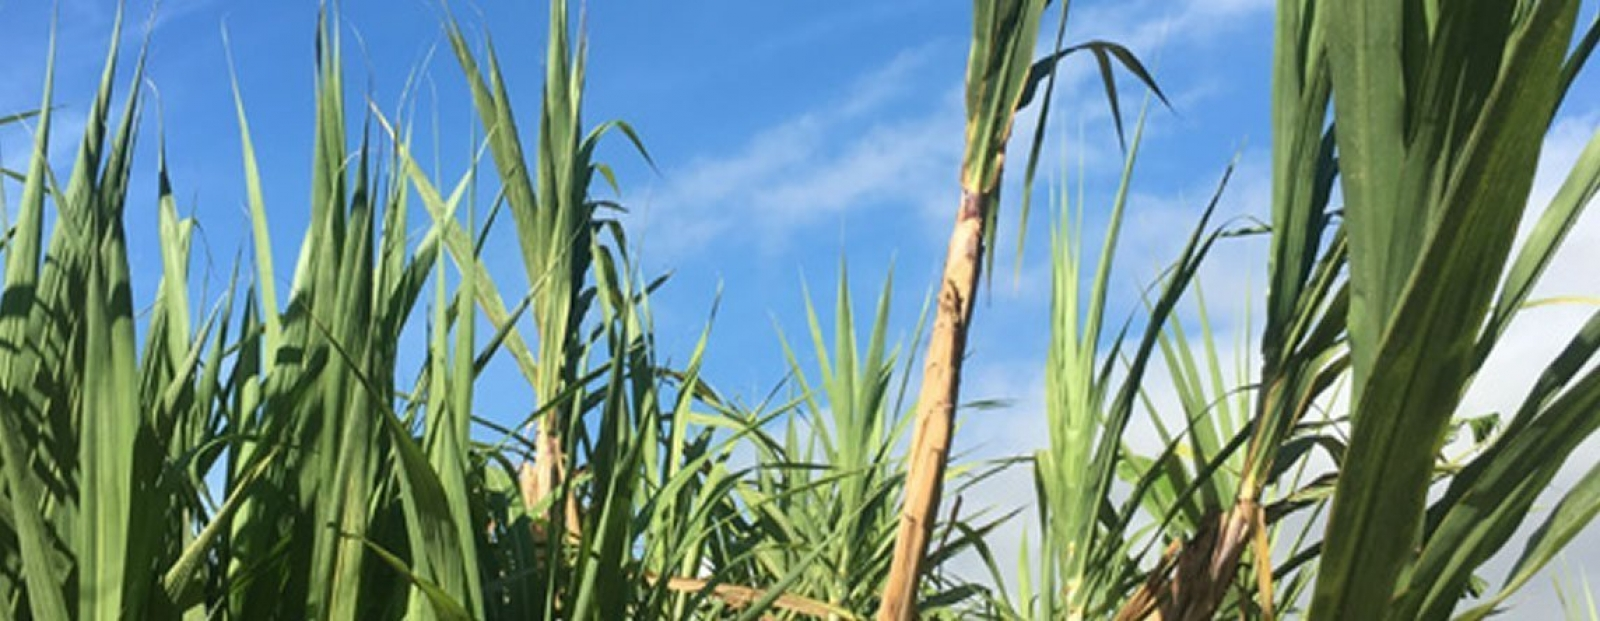 SUGARCANE IN HAWAI'I